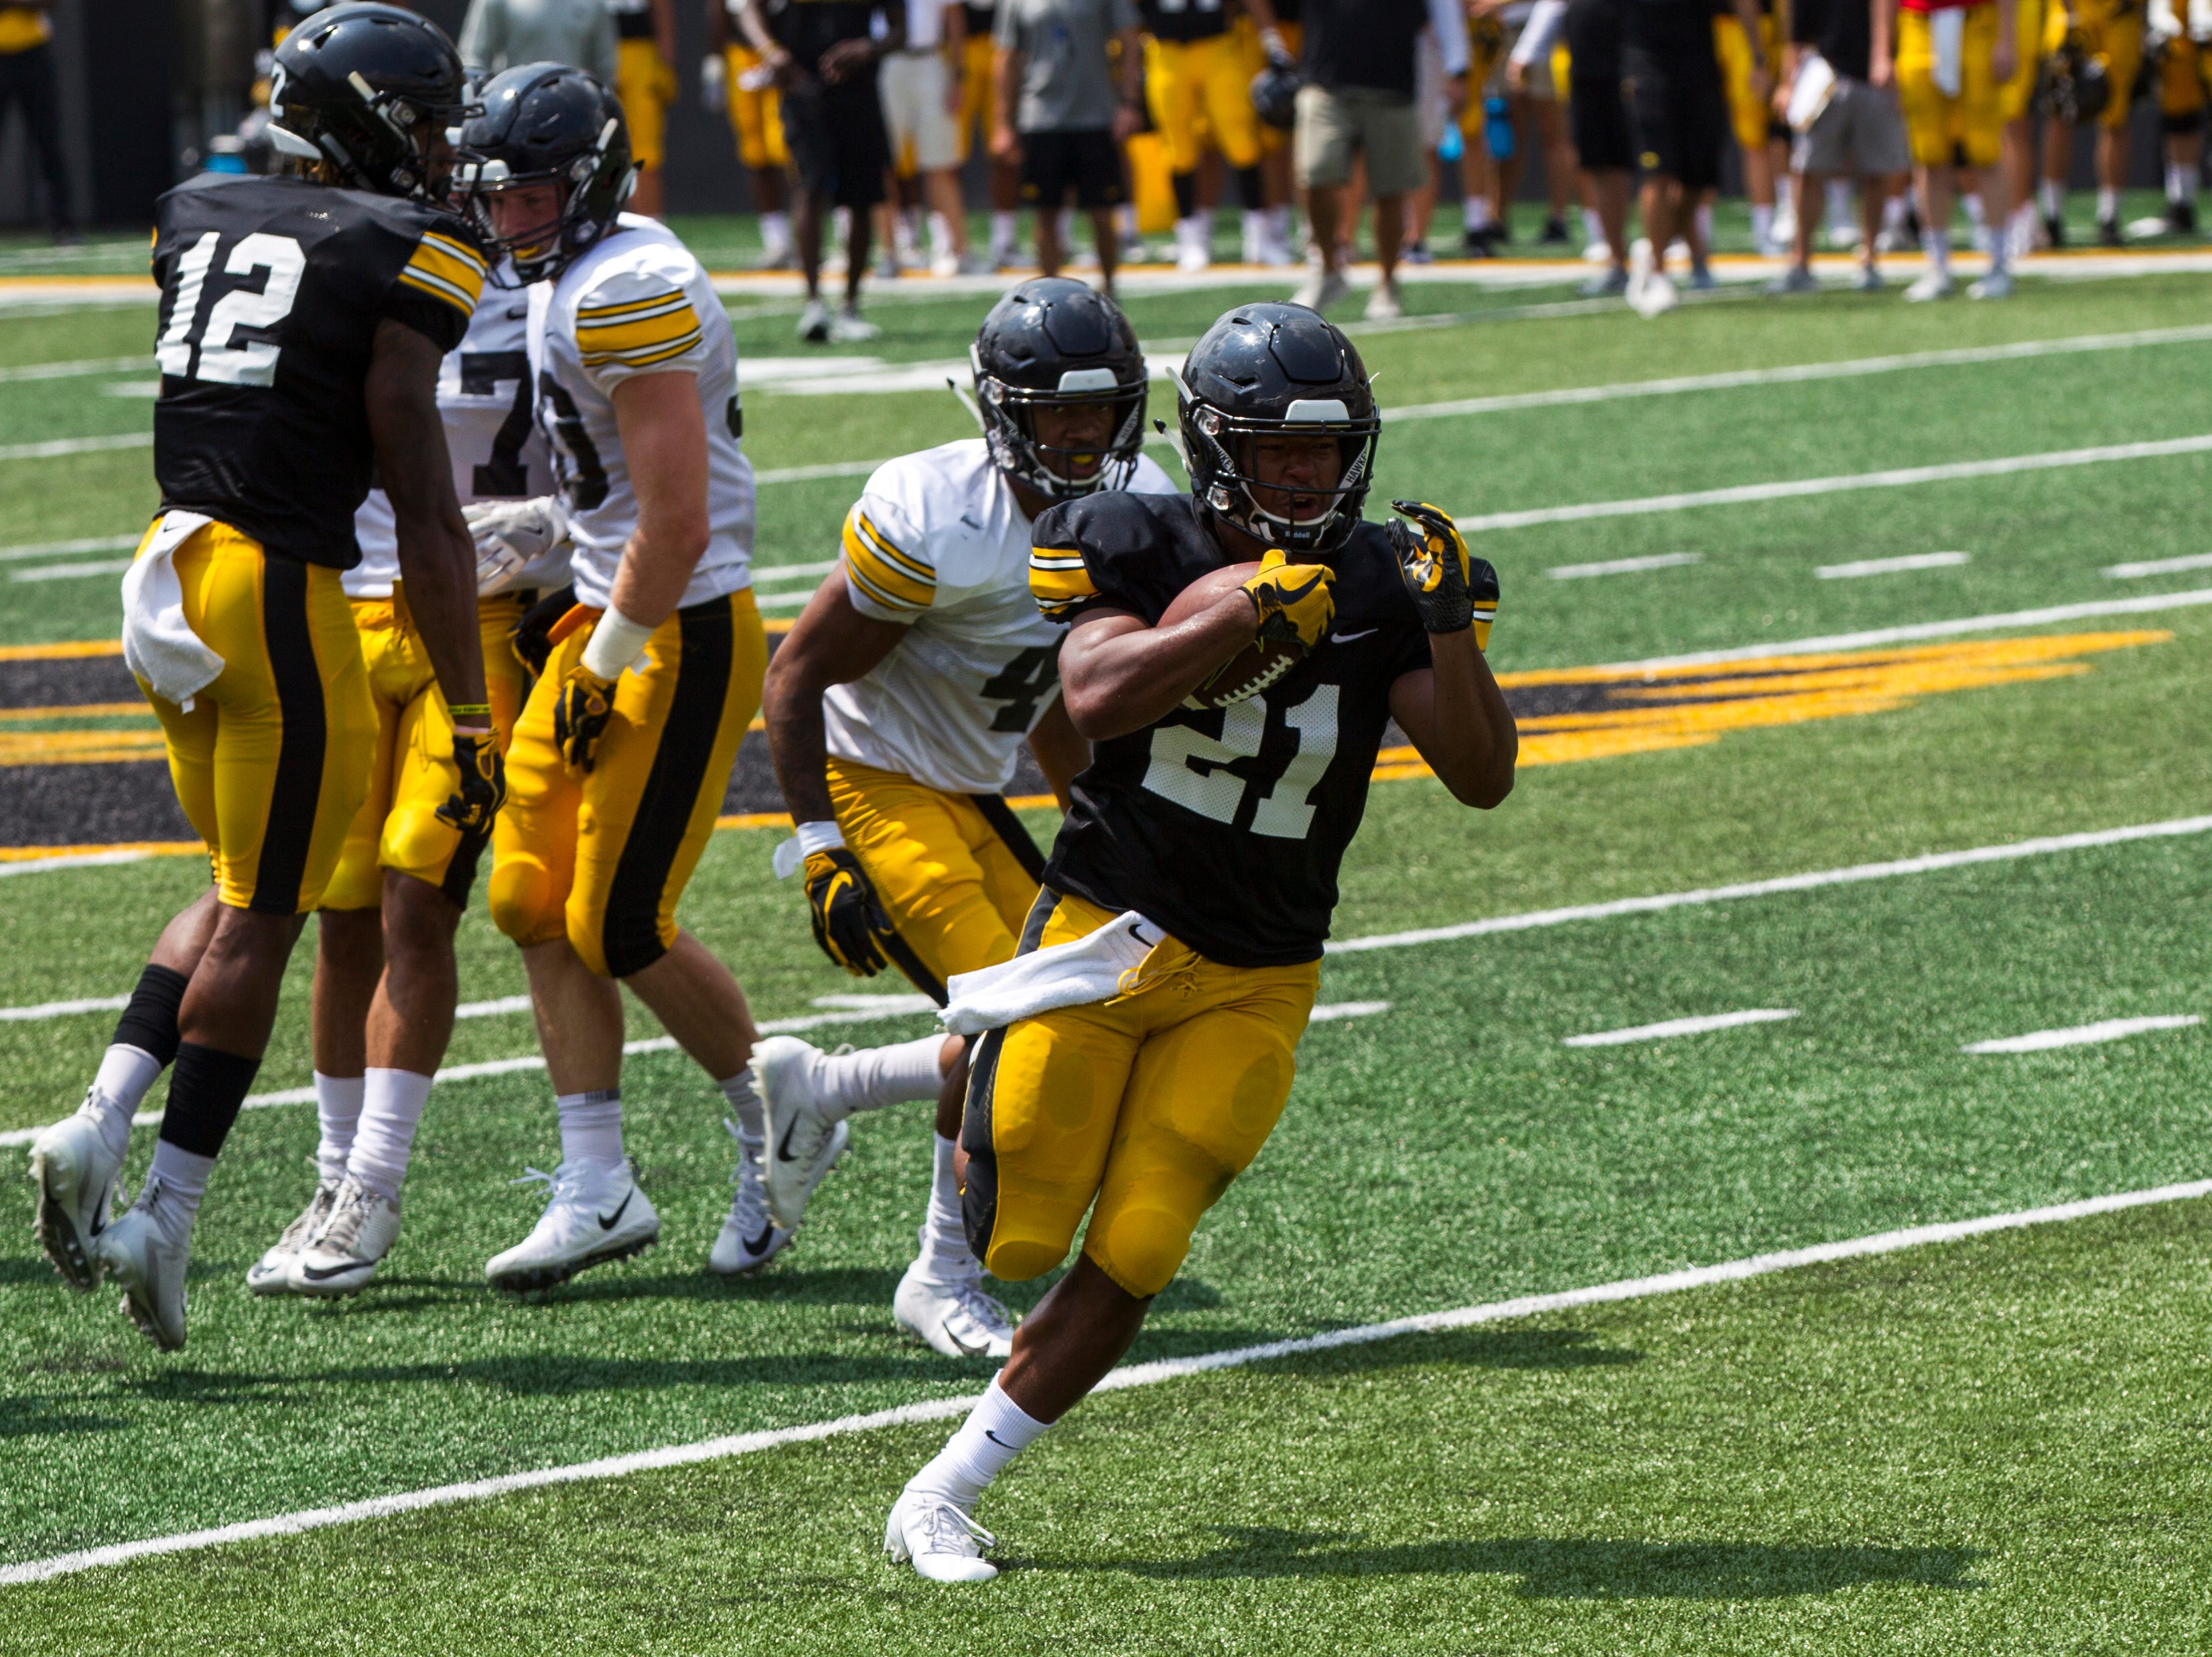 Iowa running back Ivory-Kelly Martin runs the ball during a Kids Day practice on Saturday, Aug. 11, 2018, at Kinnick Stadium in Iowa City.